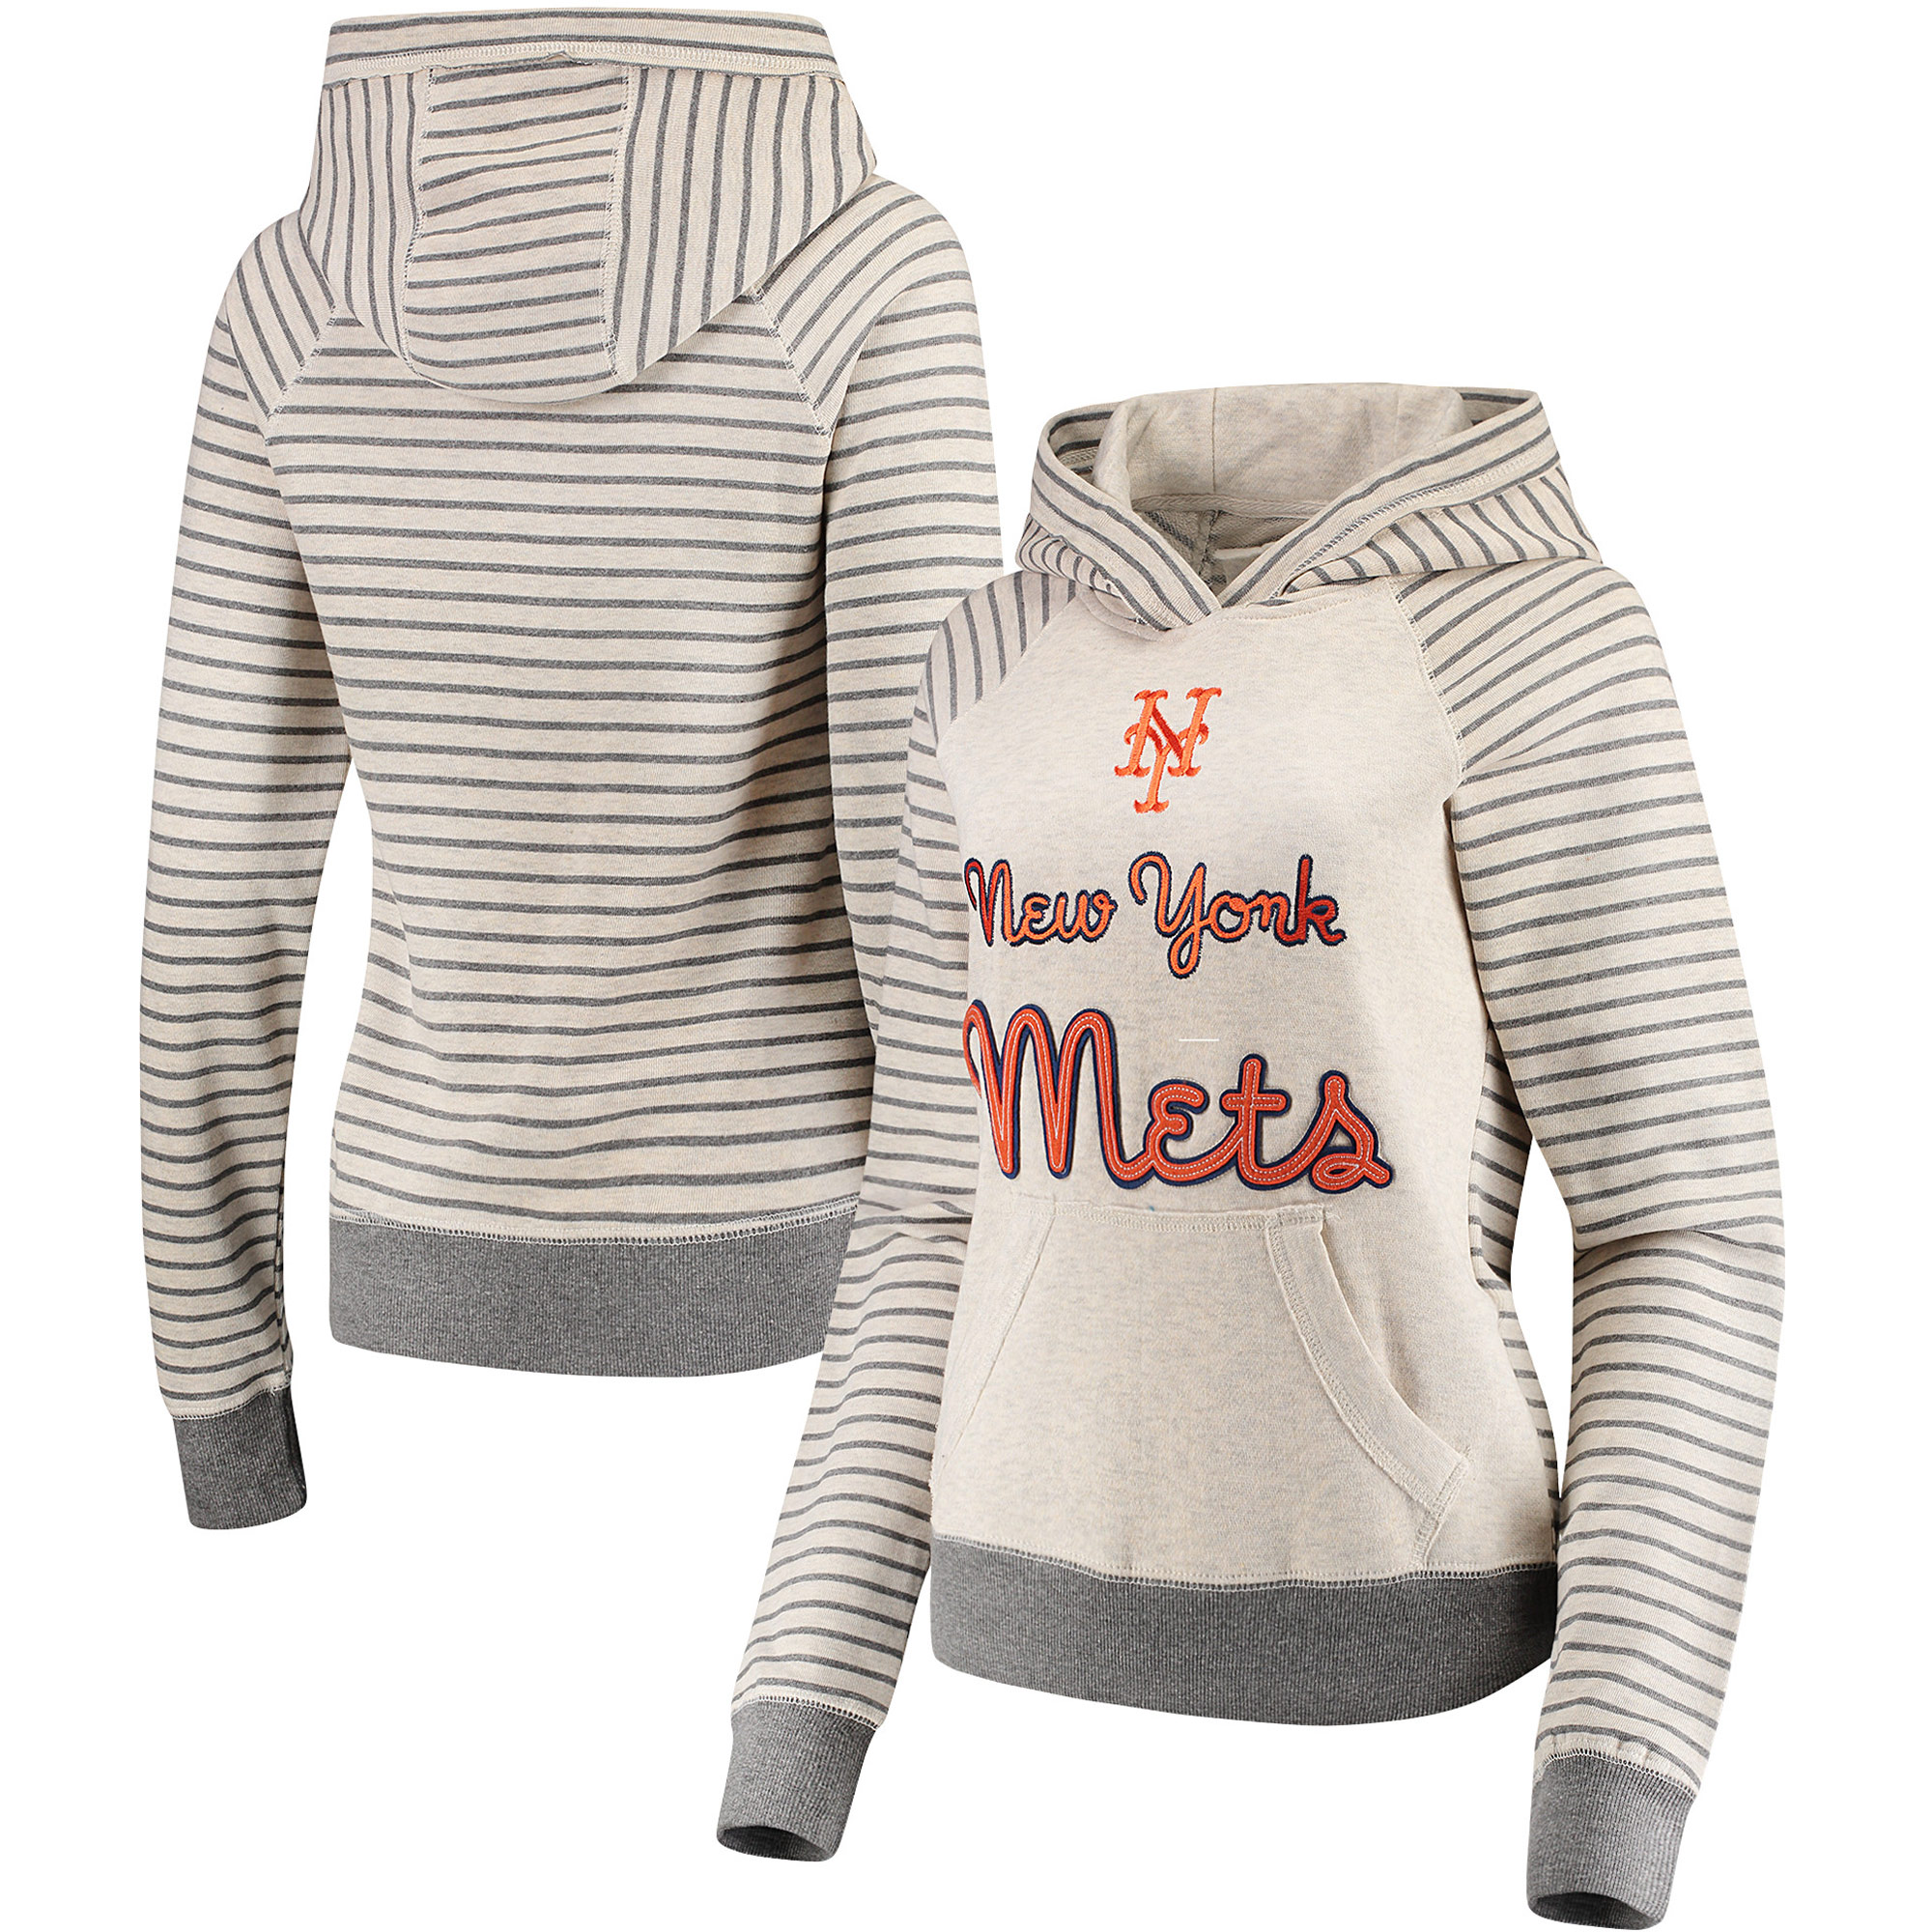 New York Mets Soft as a Grape Women's Bio Washed Stripe Sleeve Pullover Hoodie - Cream/Gray